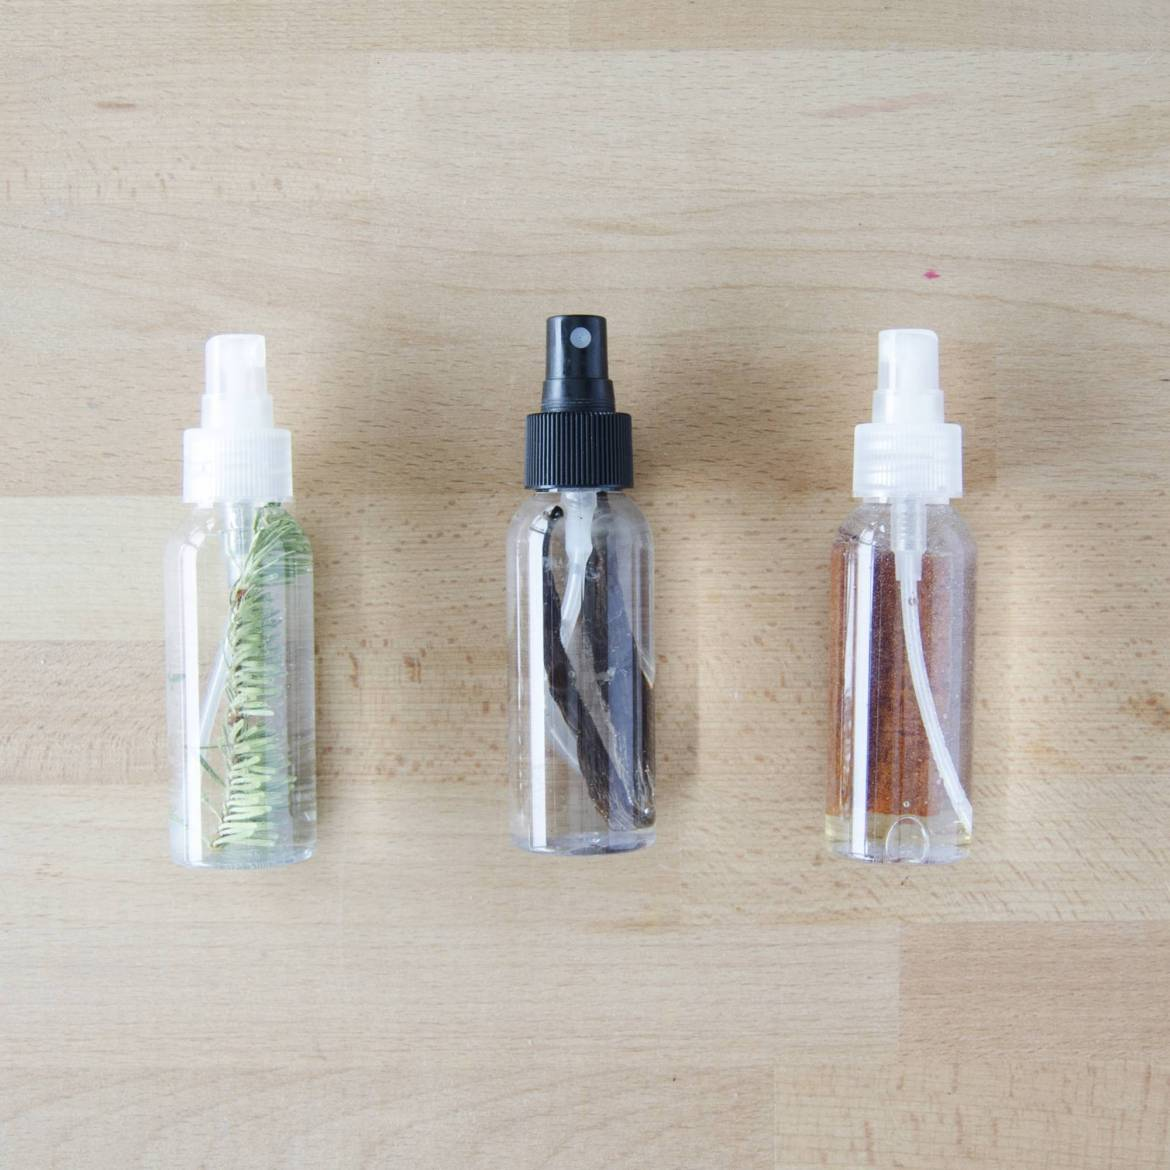 How to make pine, vanilla, and cinnamon-scented room sprays!